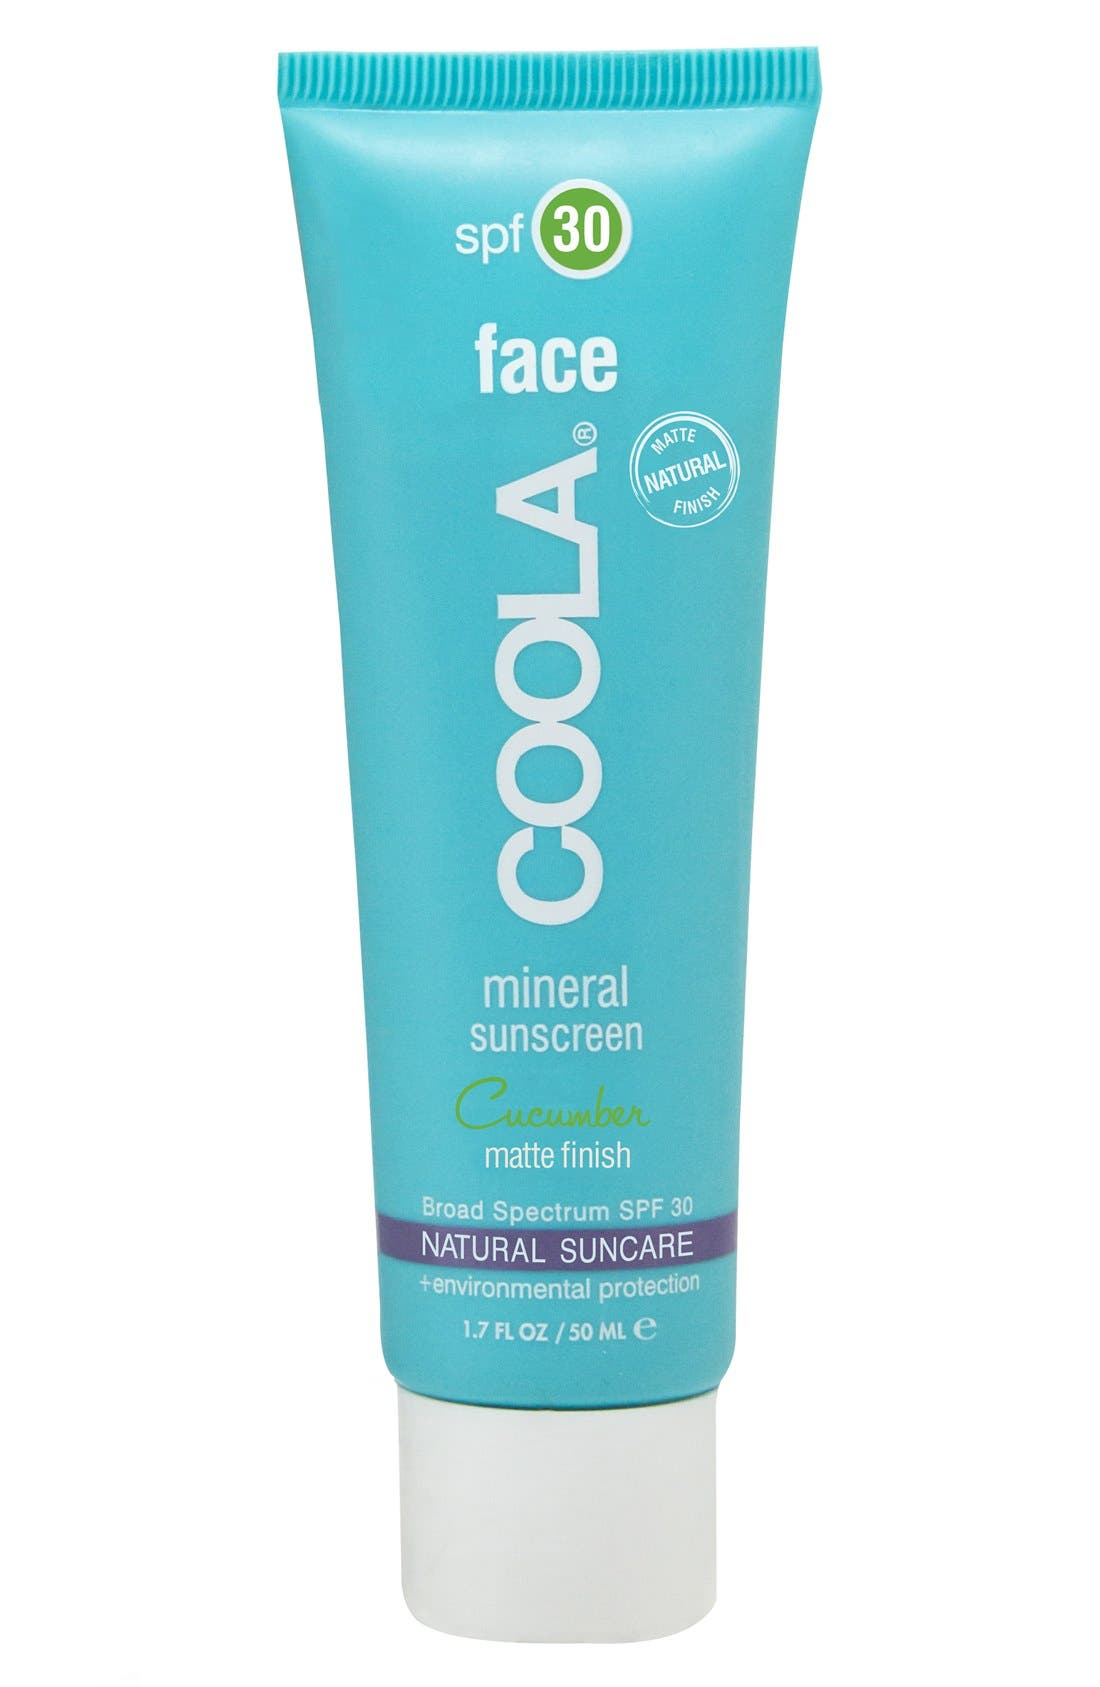 COOLA<sup>®</sup> Suncare Cucumber Face Mineral Sunscreen SPF 30,                             Main thumbnail 1, color,                             NO COLOR